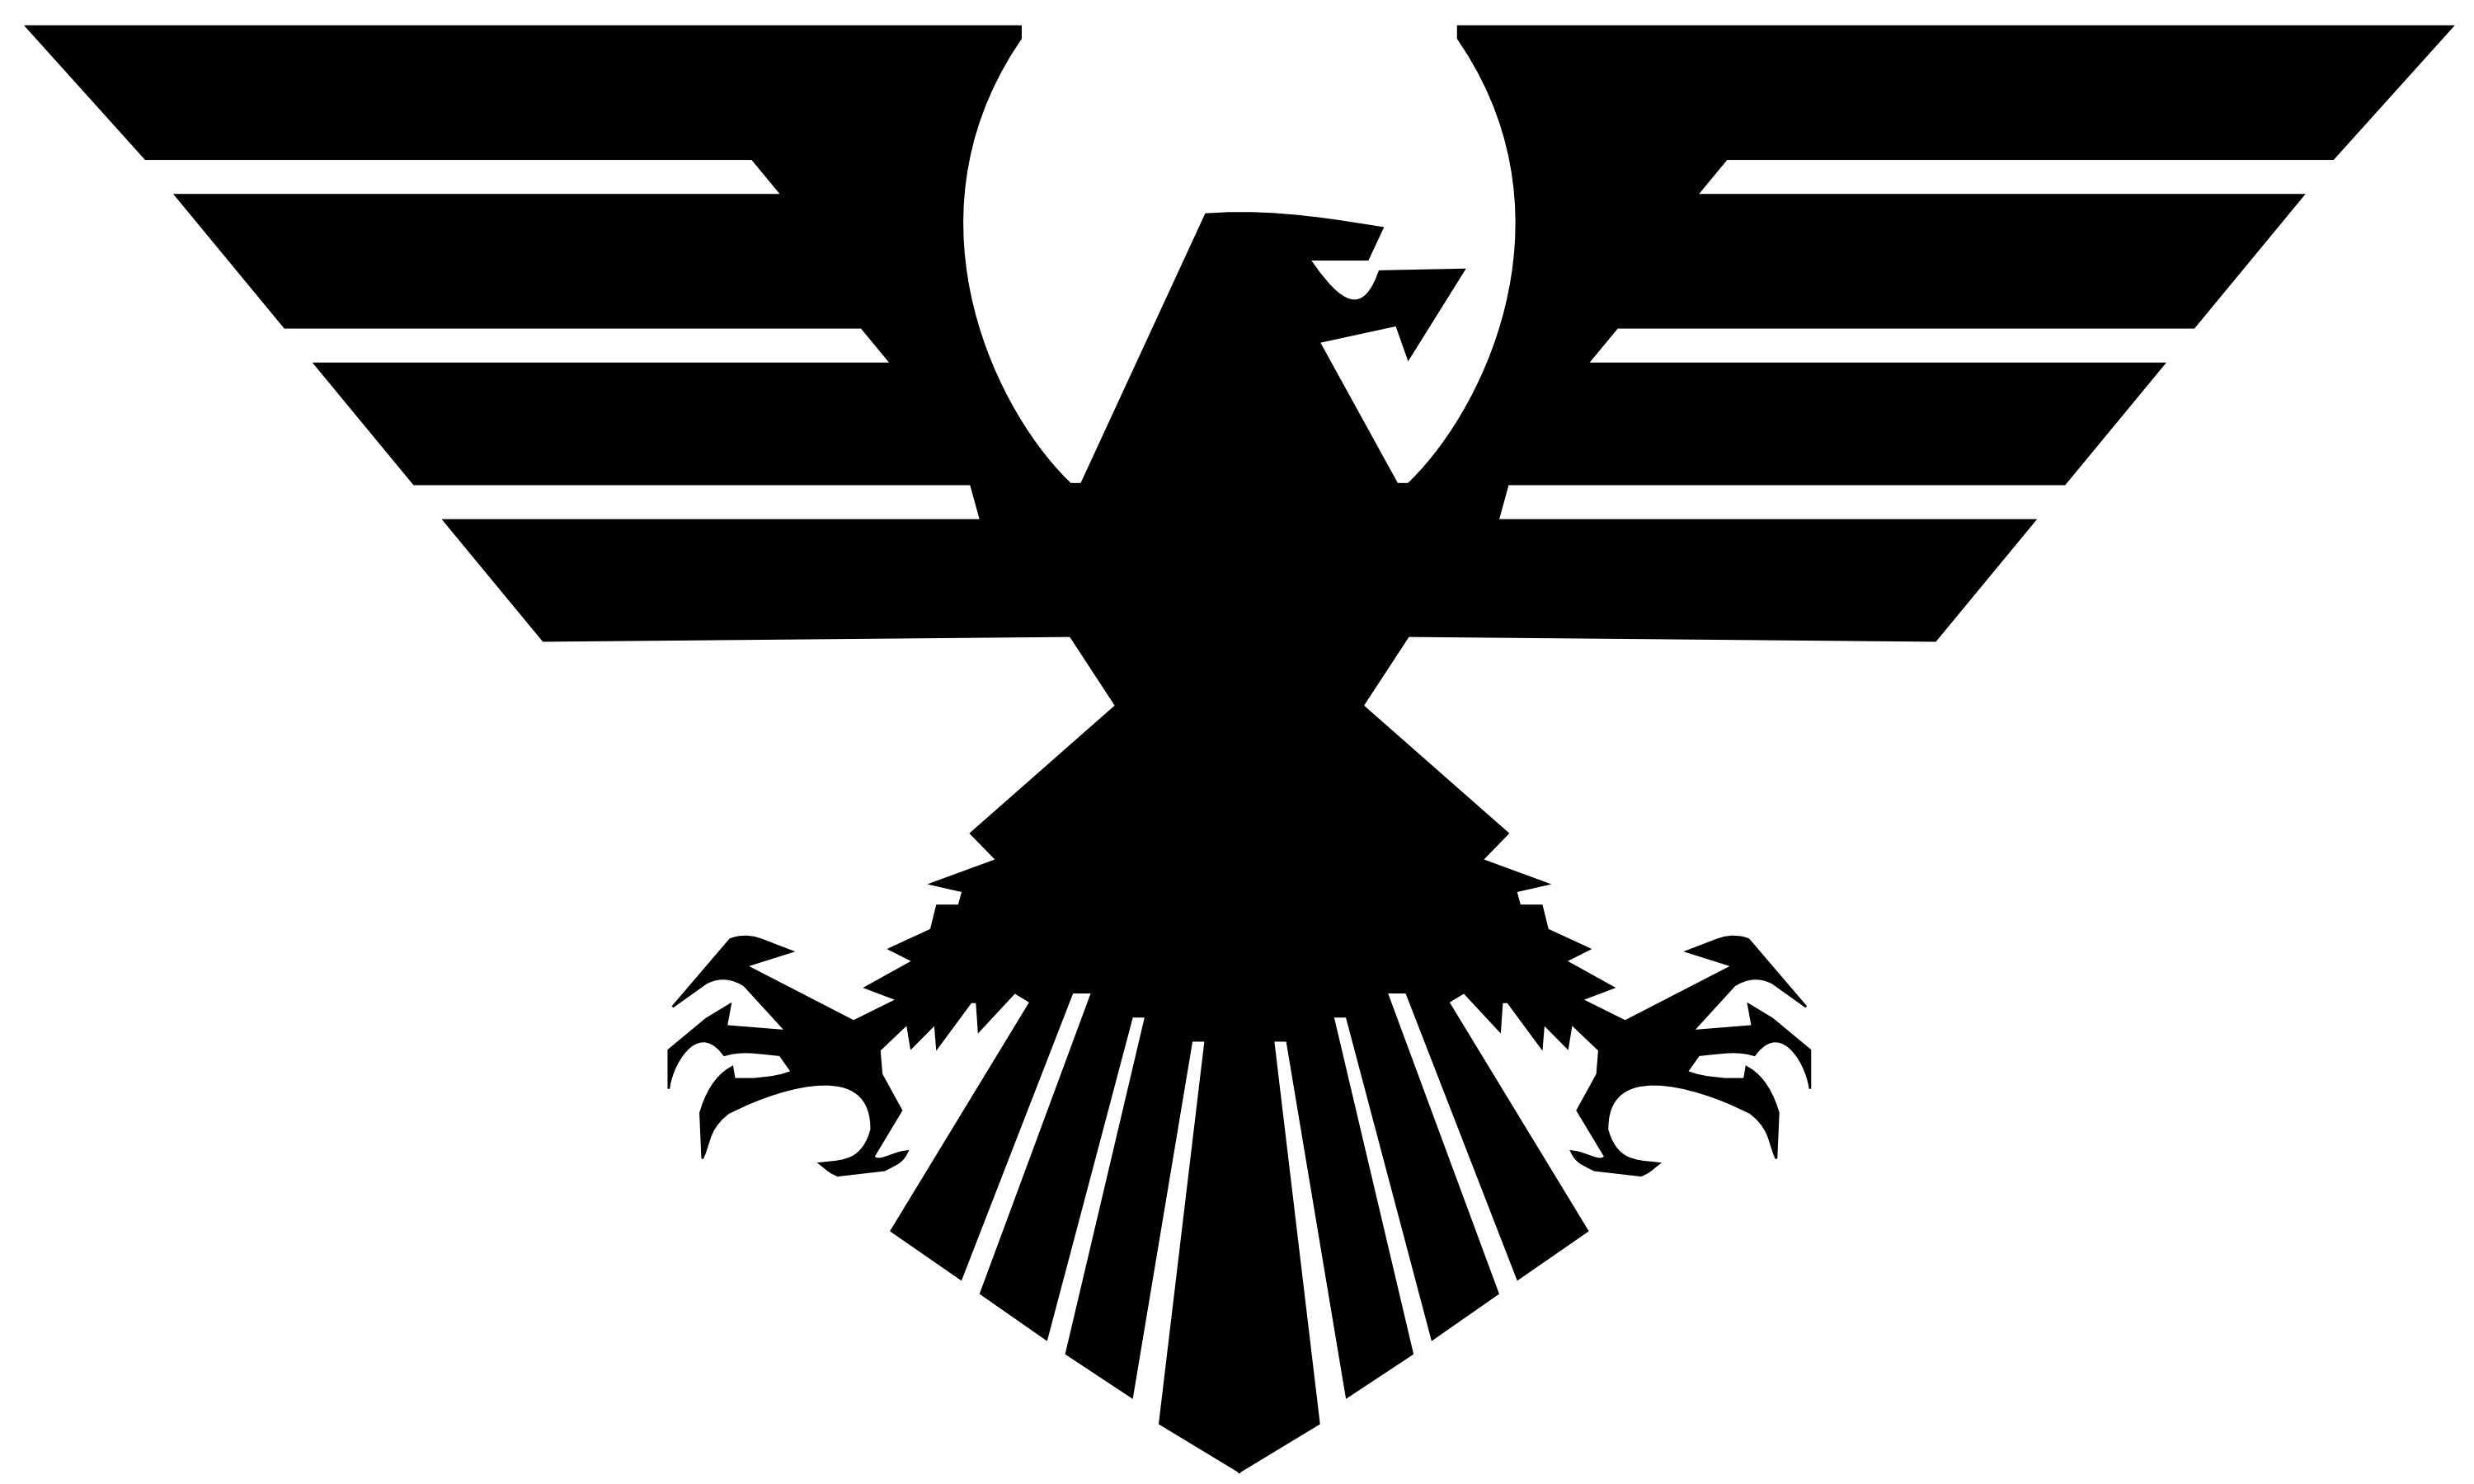 eagle symbol logo - photo #6